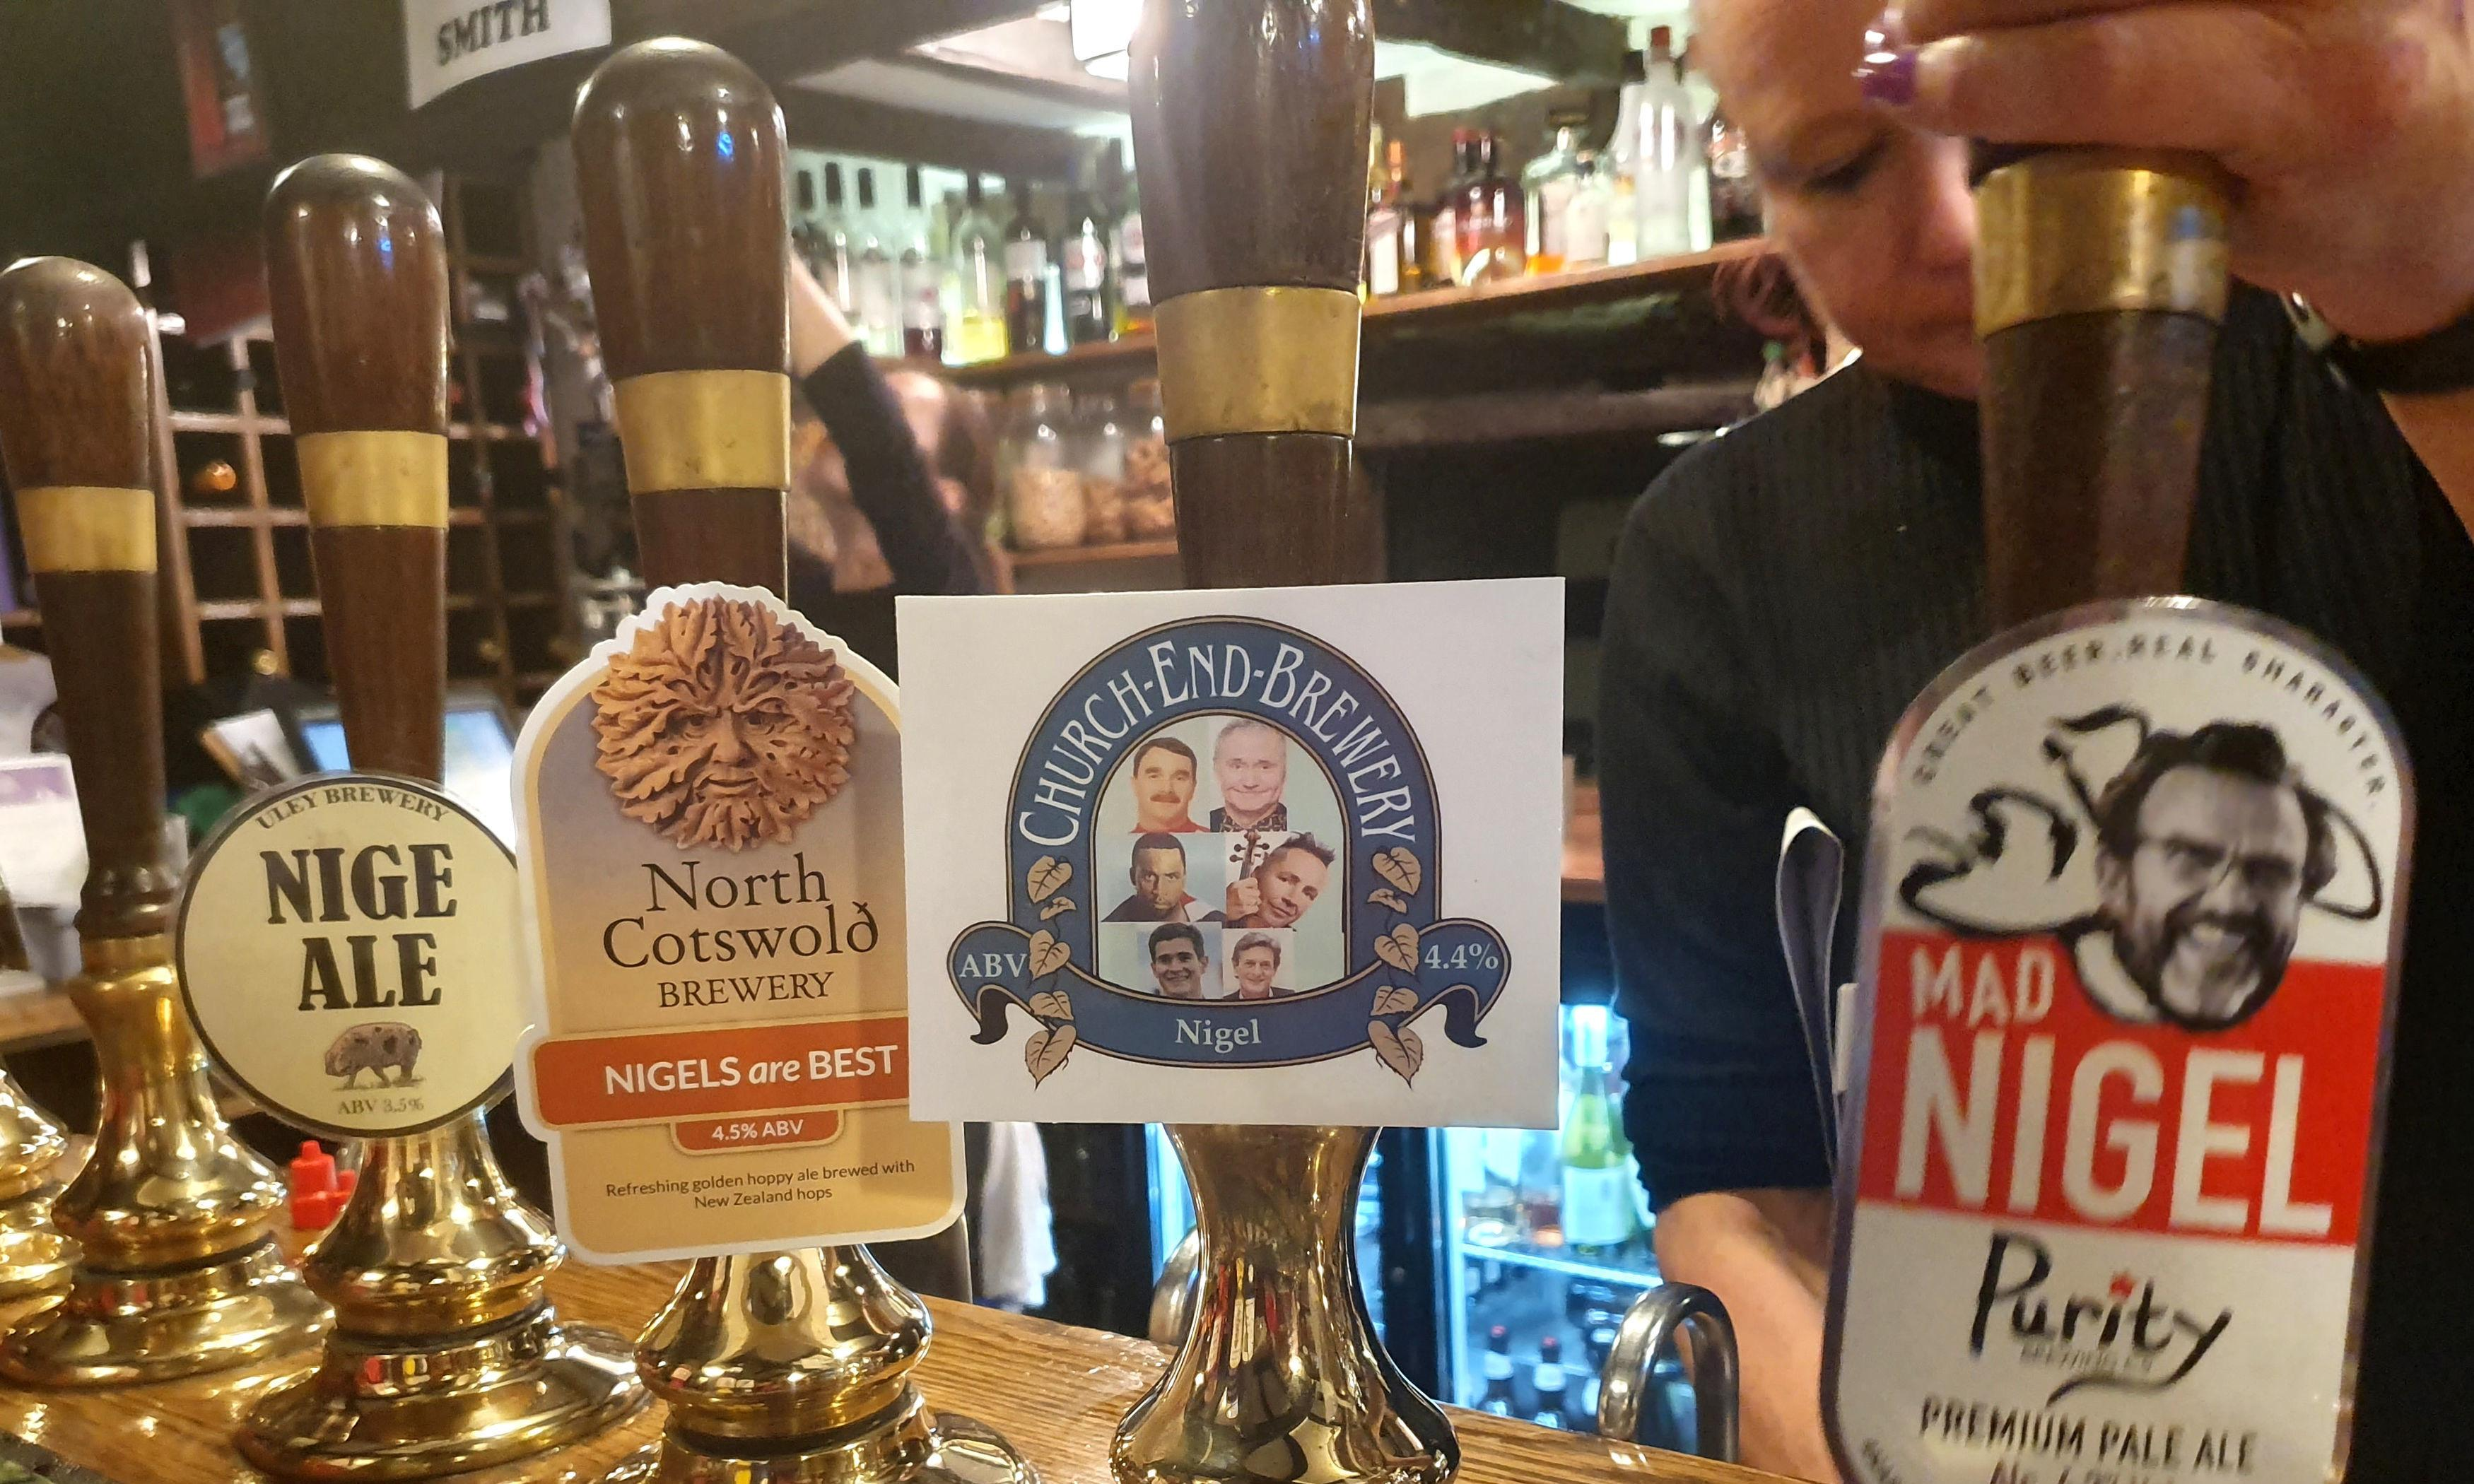 Pub welcomes 433 Nigels for party to 'celebrate Nigelness'